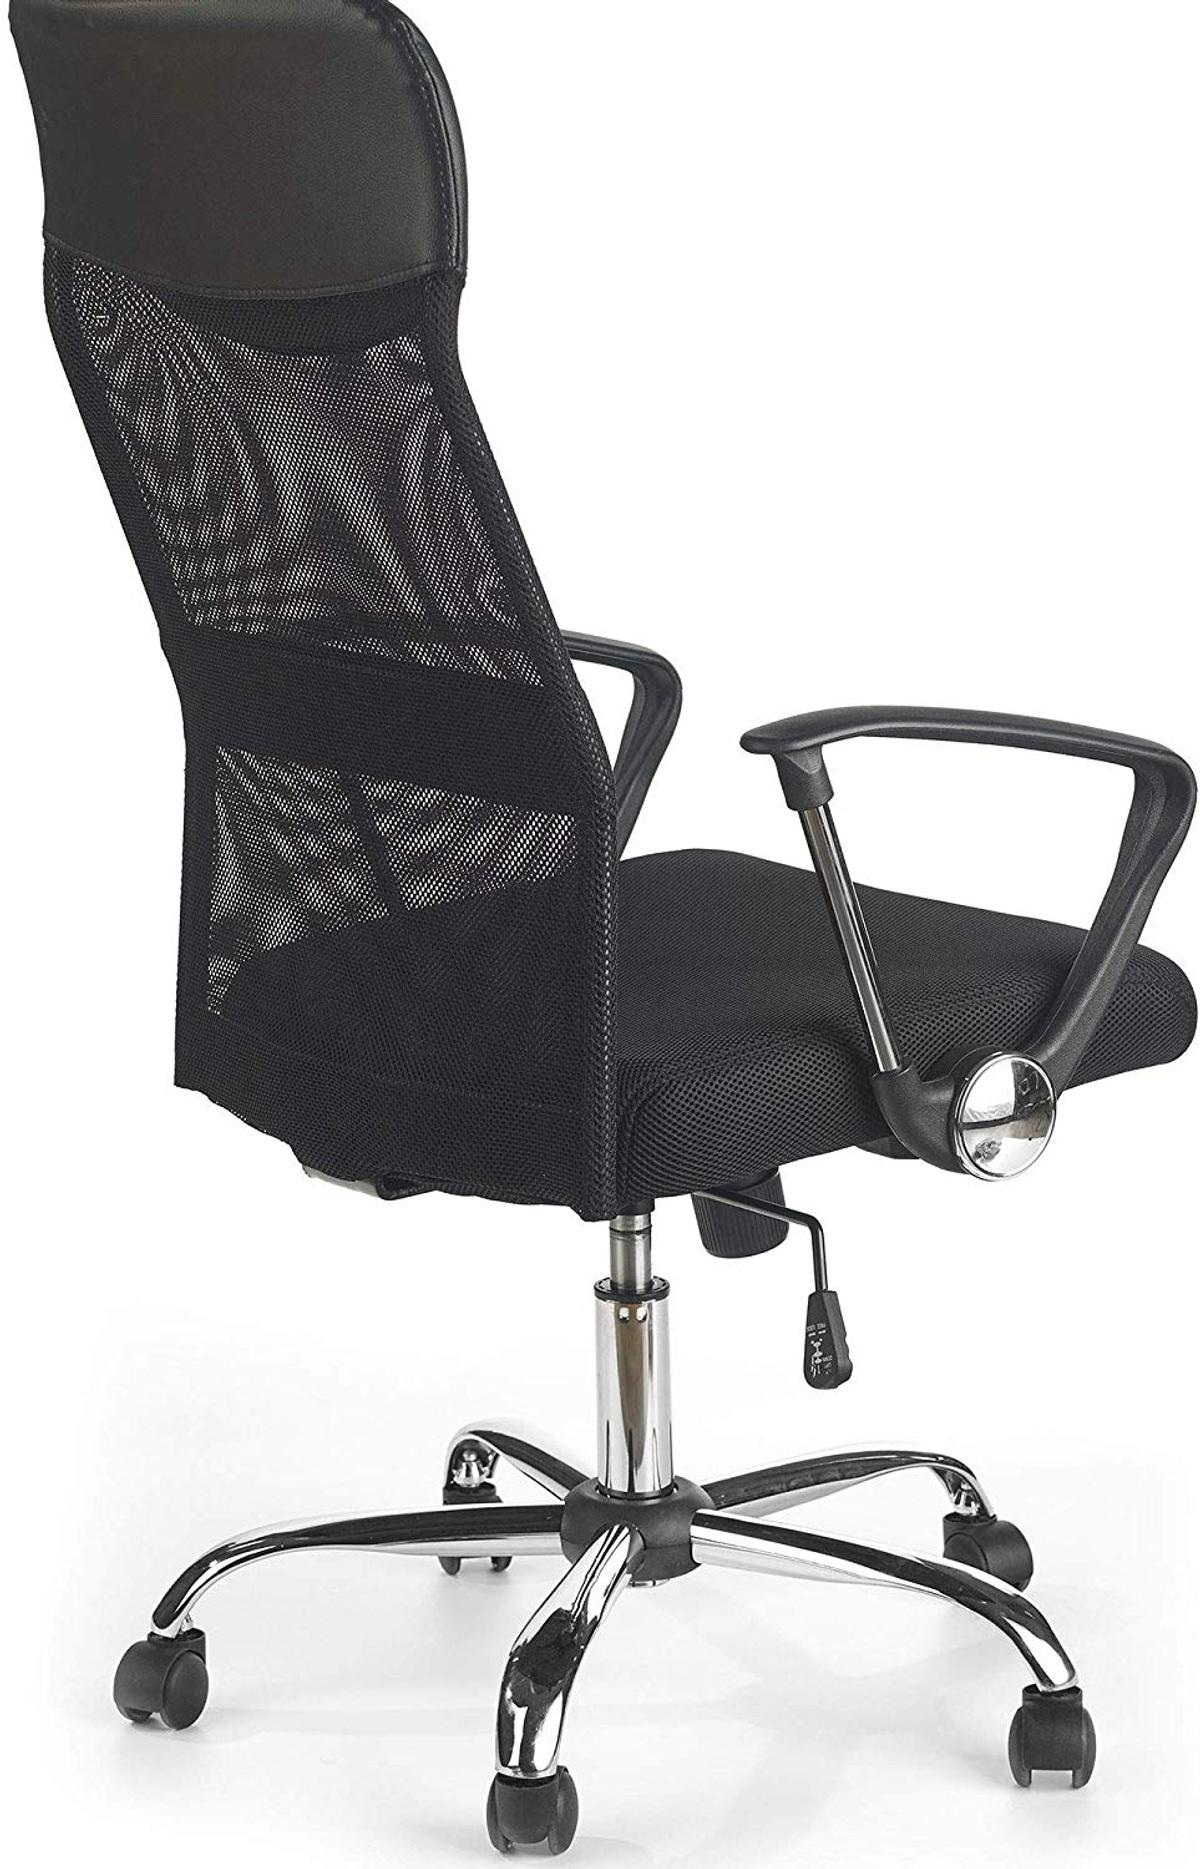 Office Chair Black In Le5 Leicester